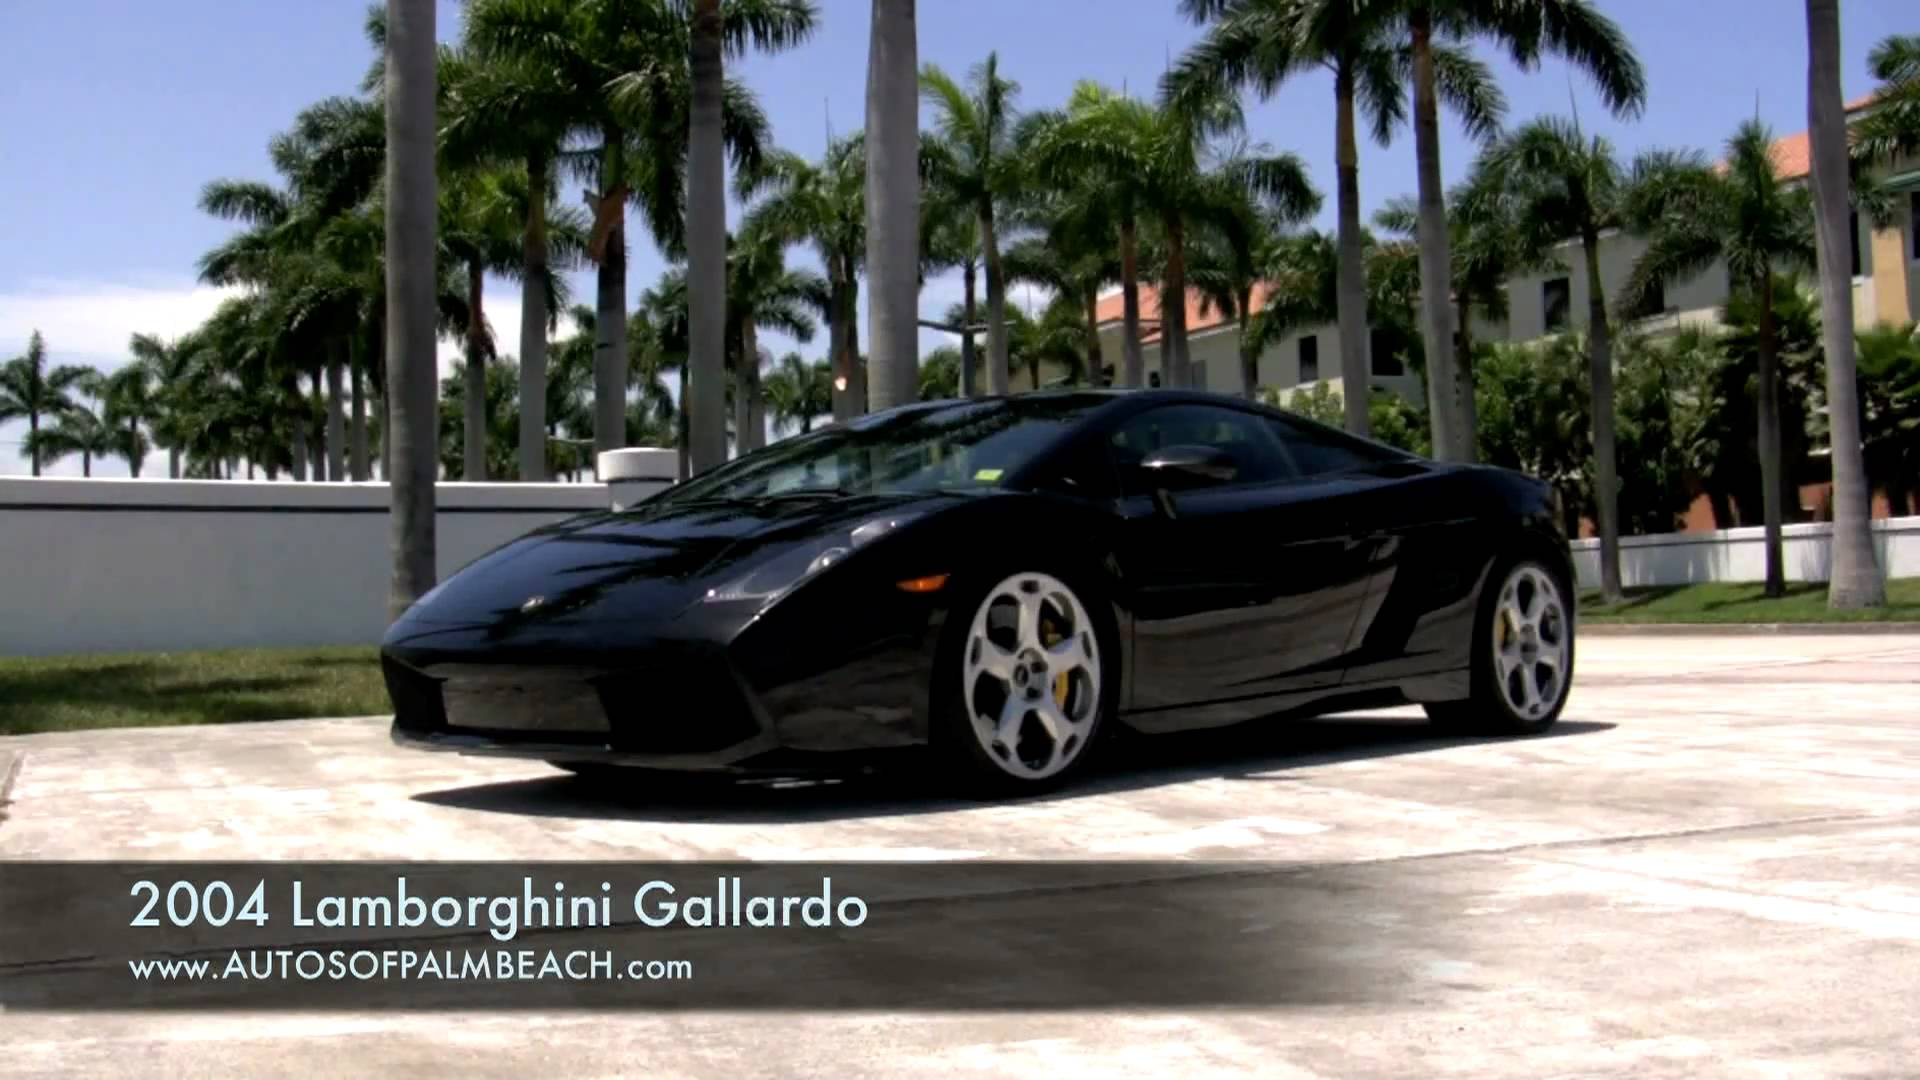 2004 Lamborghini Gallardo Black A2543 - YouTube